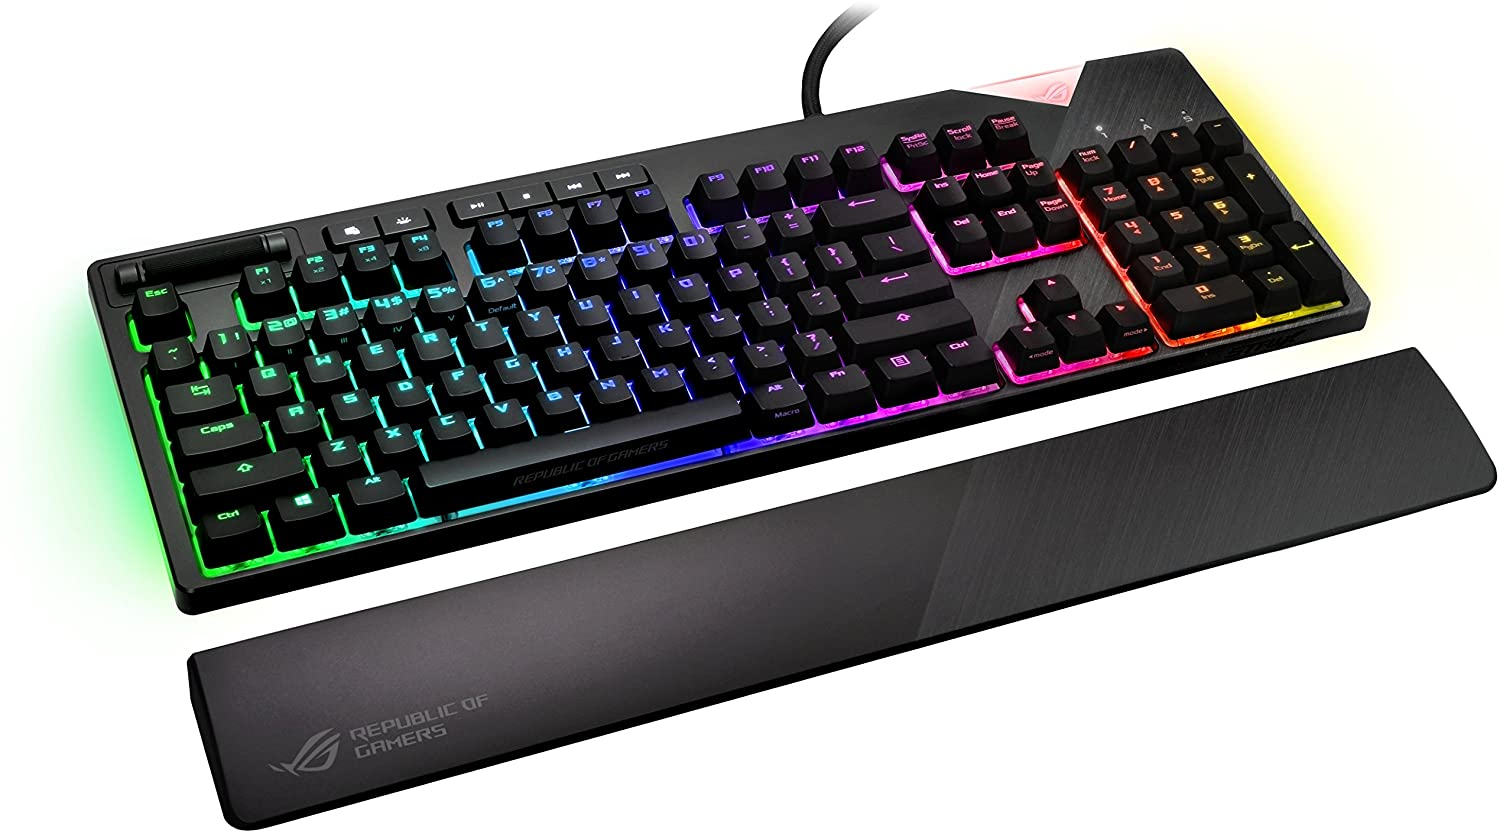 Asus Rog Strix tastiera gaming top di gamma con switch Cherry MX Red